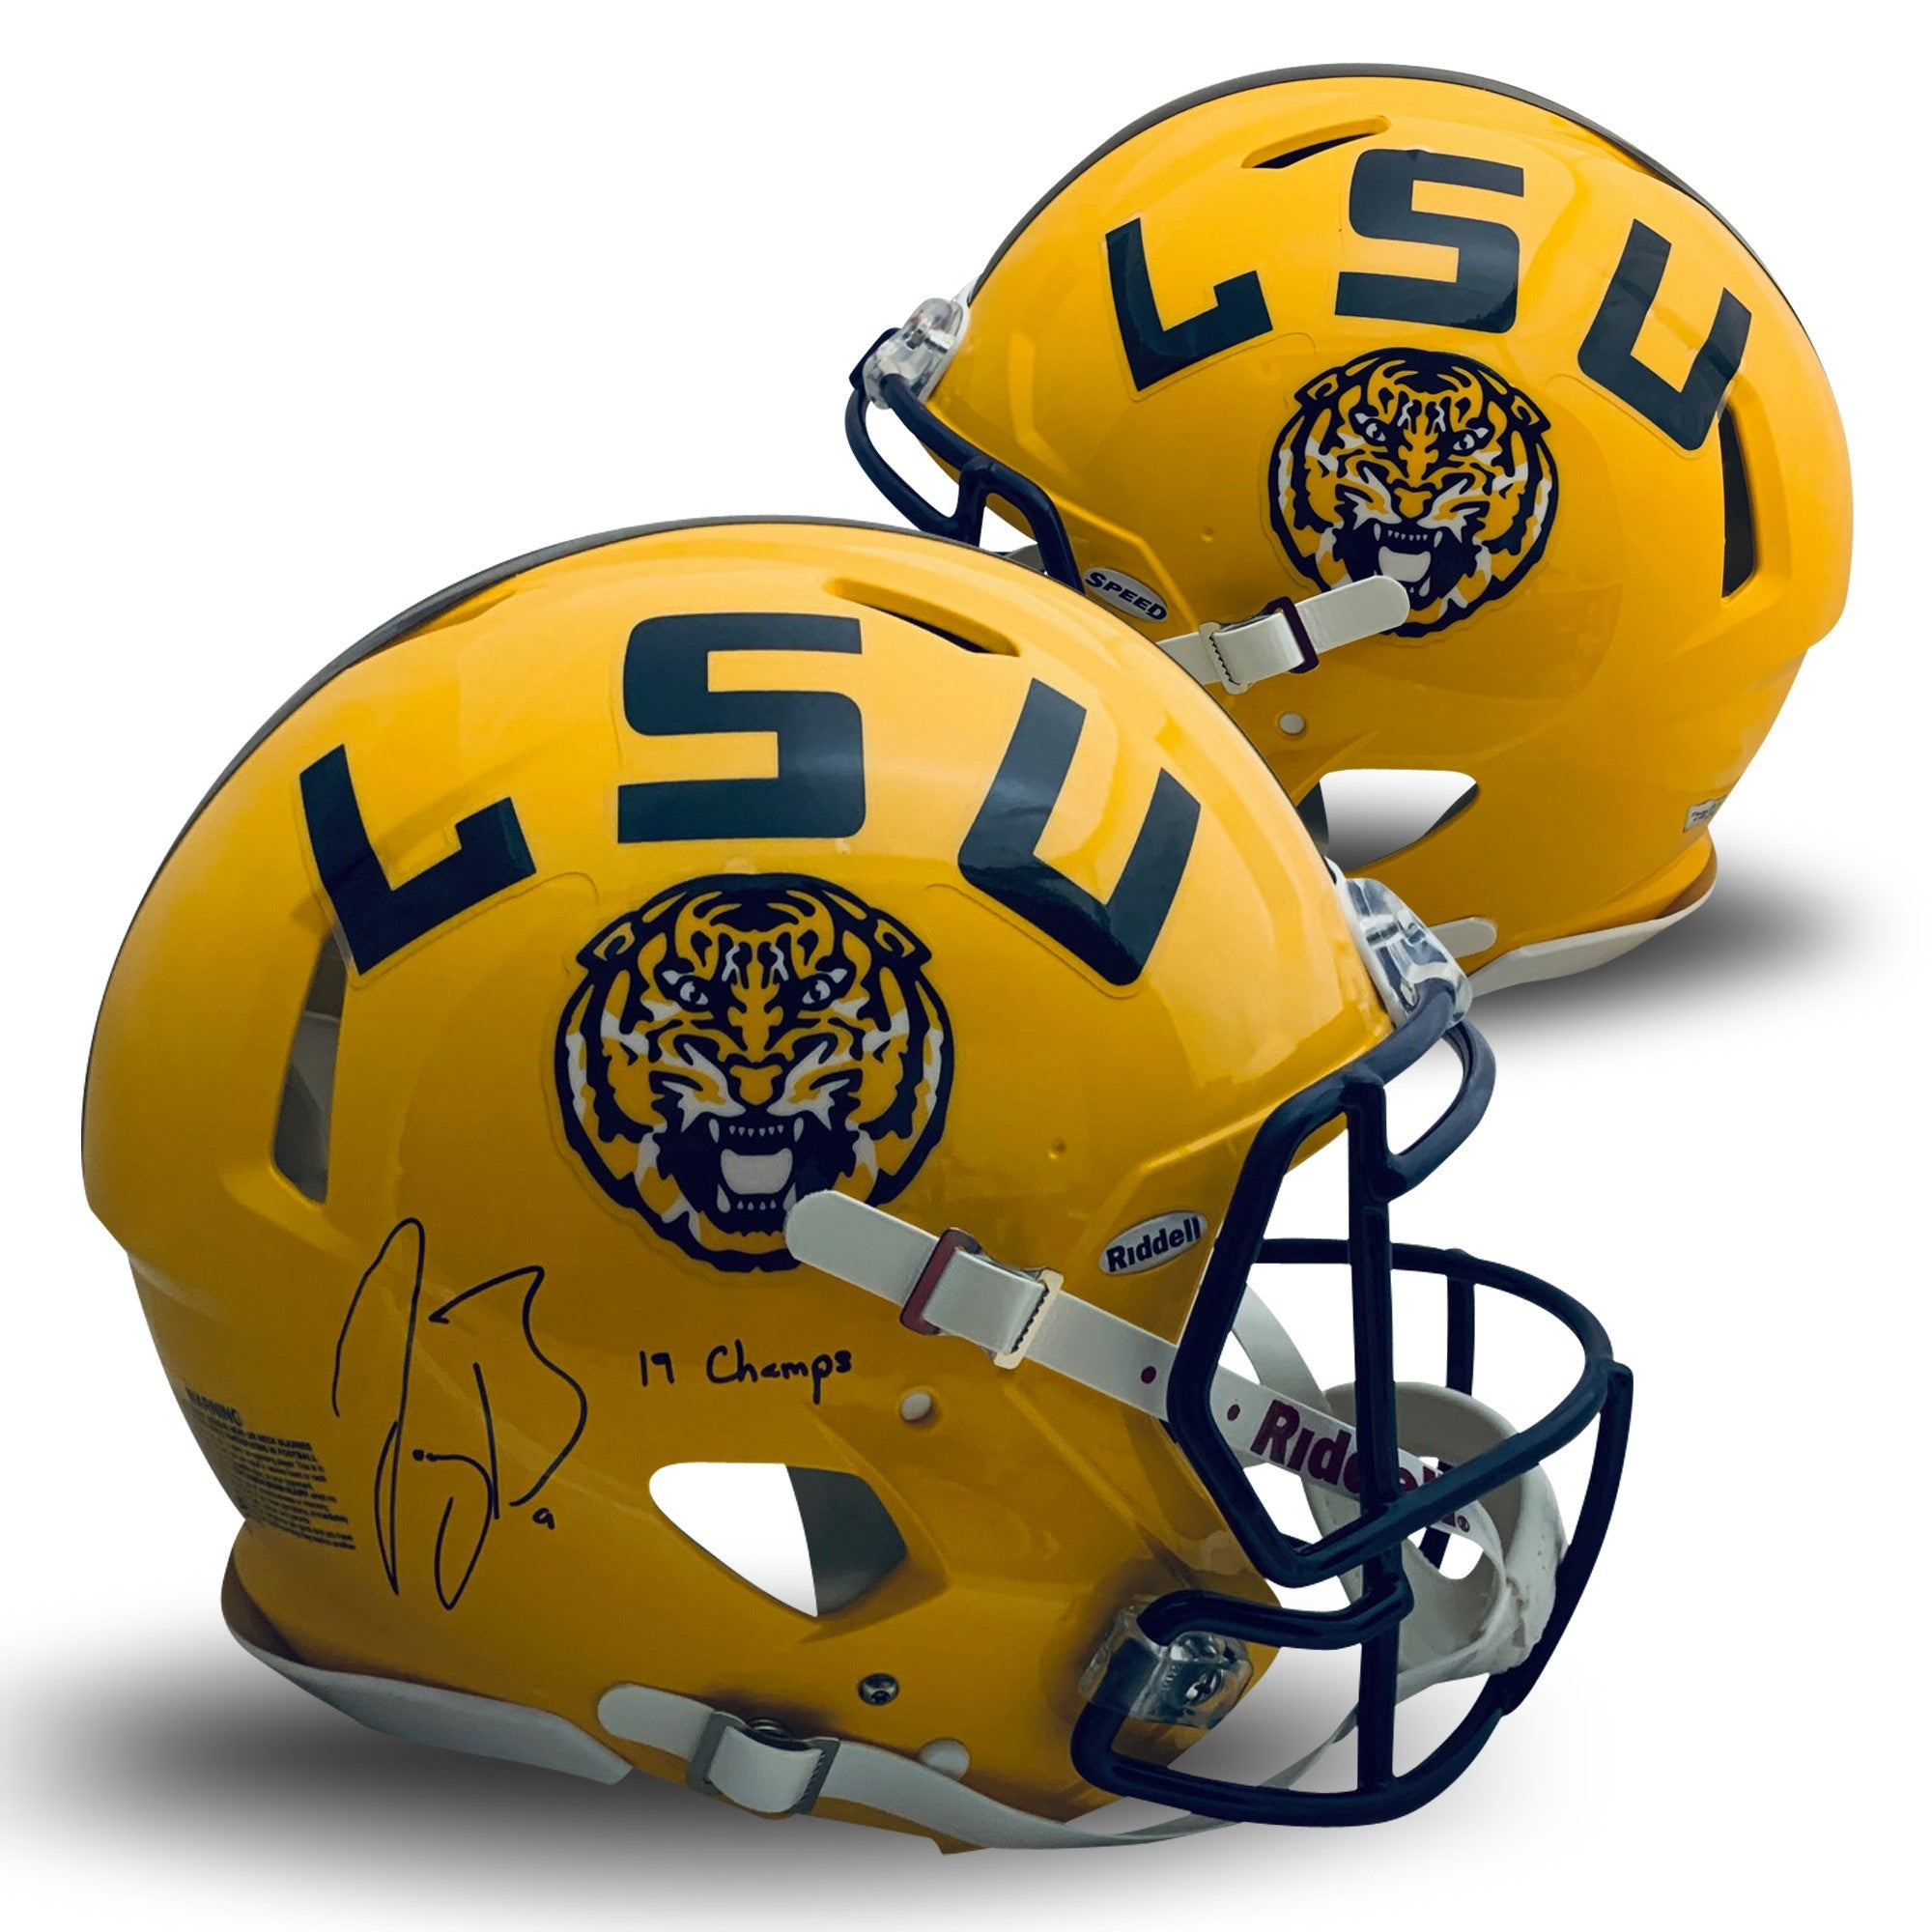 Joe Burrow Autographed LSU Tigers Signed Full Size Authentic Speed Helmet 2019 NATIONAL CHAMPIONS Fanatics Authentic COA-Powers Sports Memorabilia